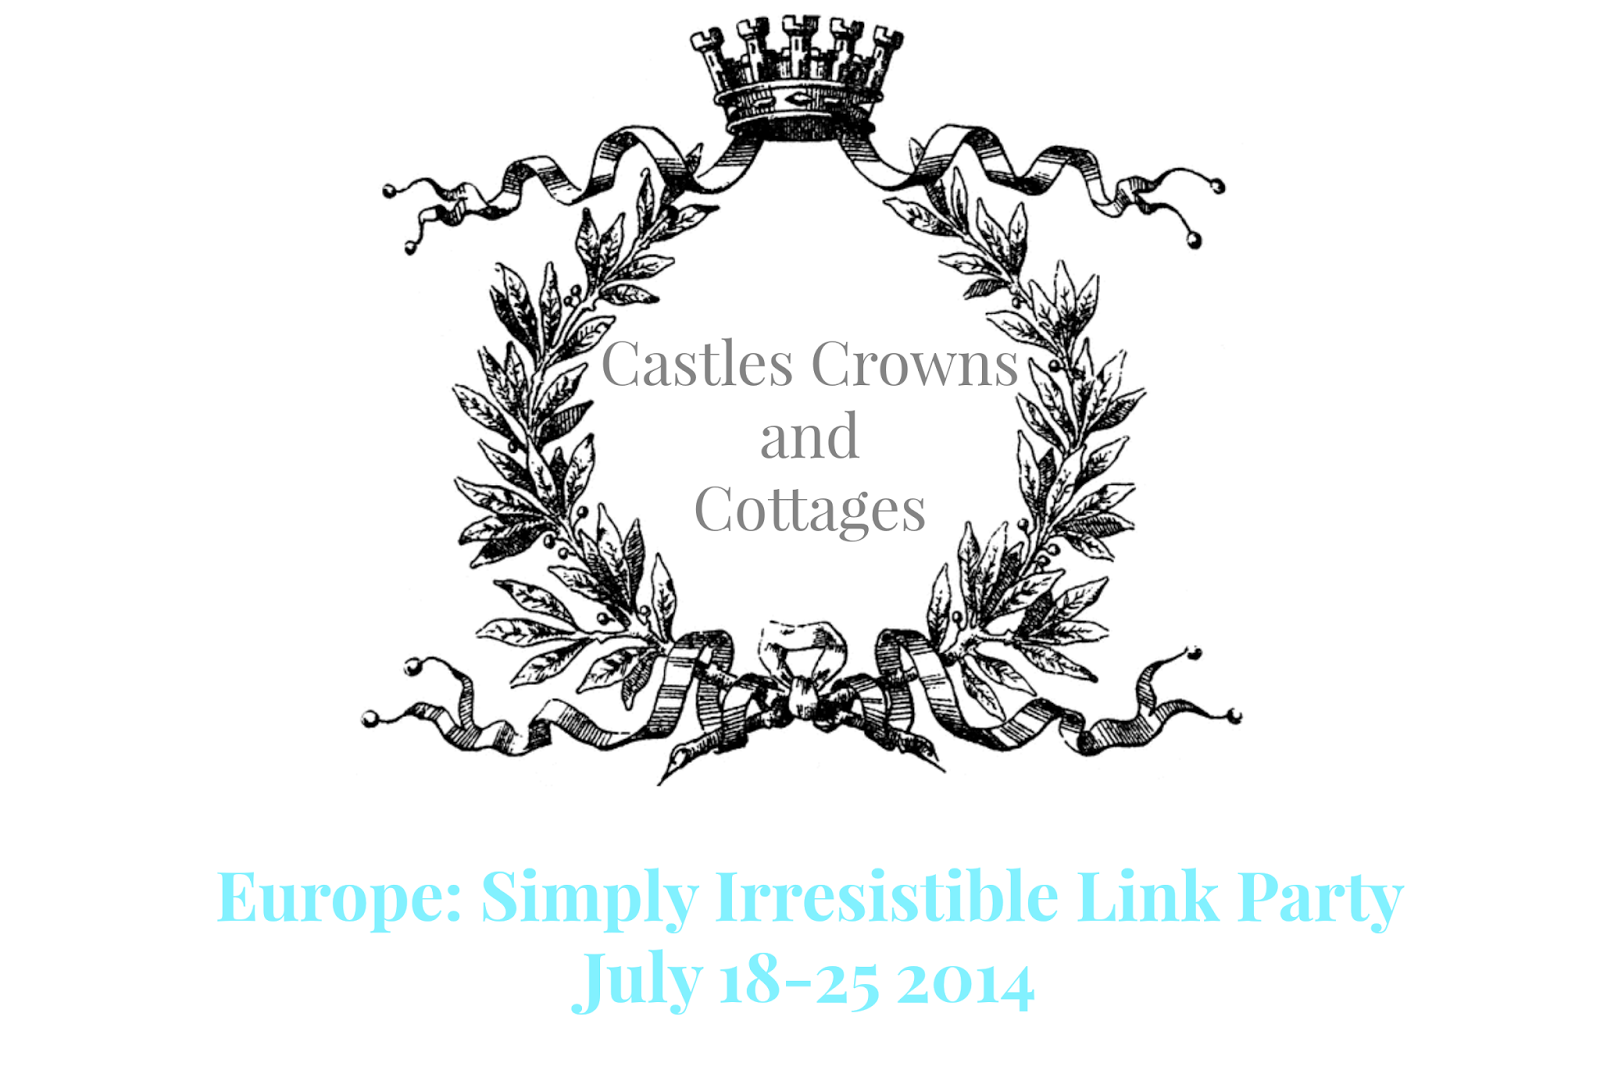 http://wwwcastlescrownscottages.blogspot.de/